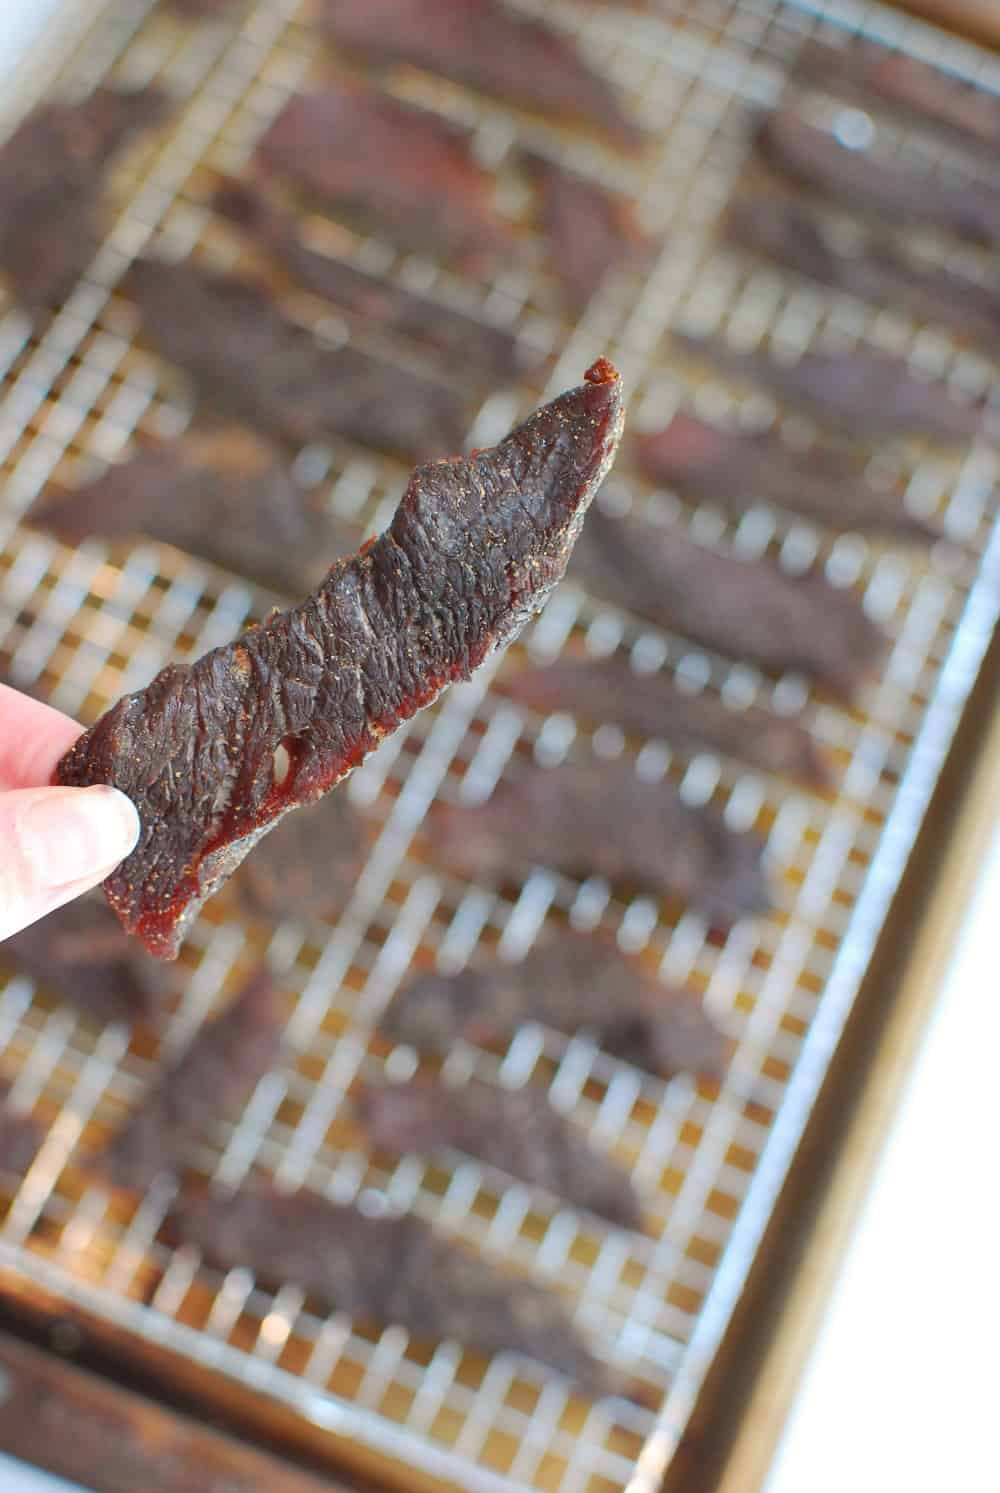 A strip of beef jerky in someone's hand